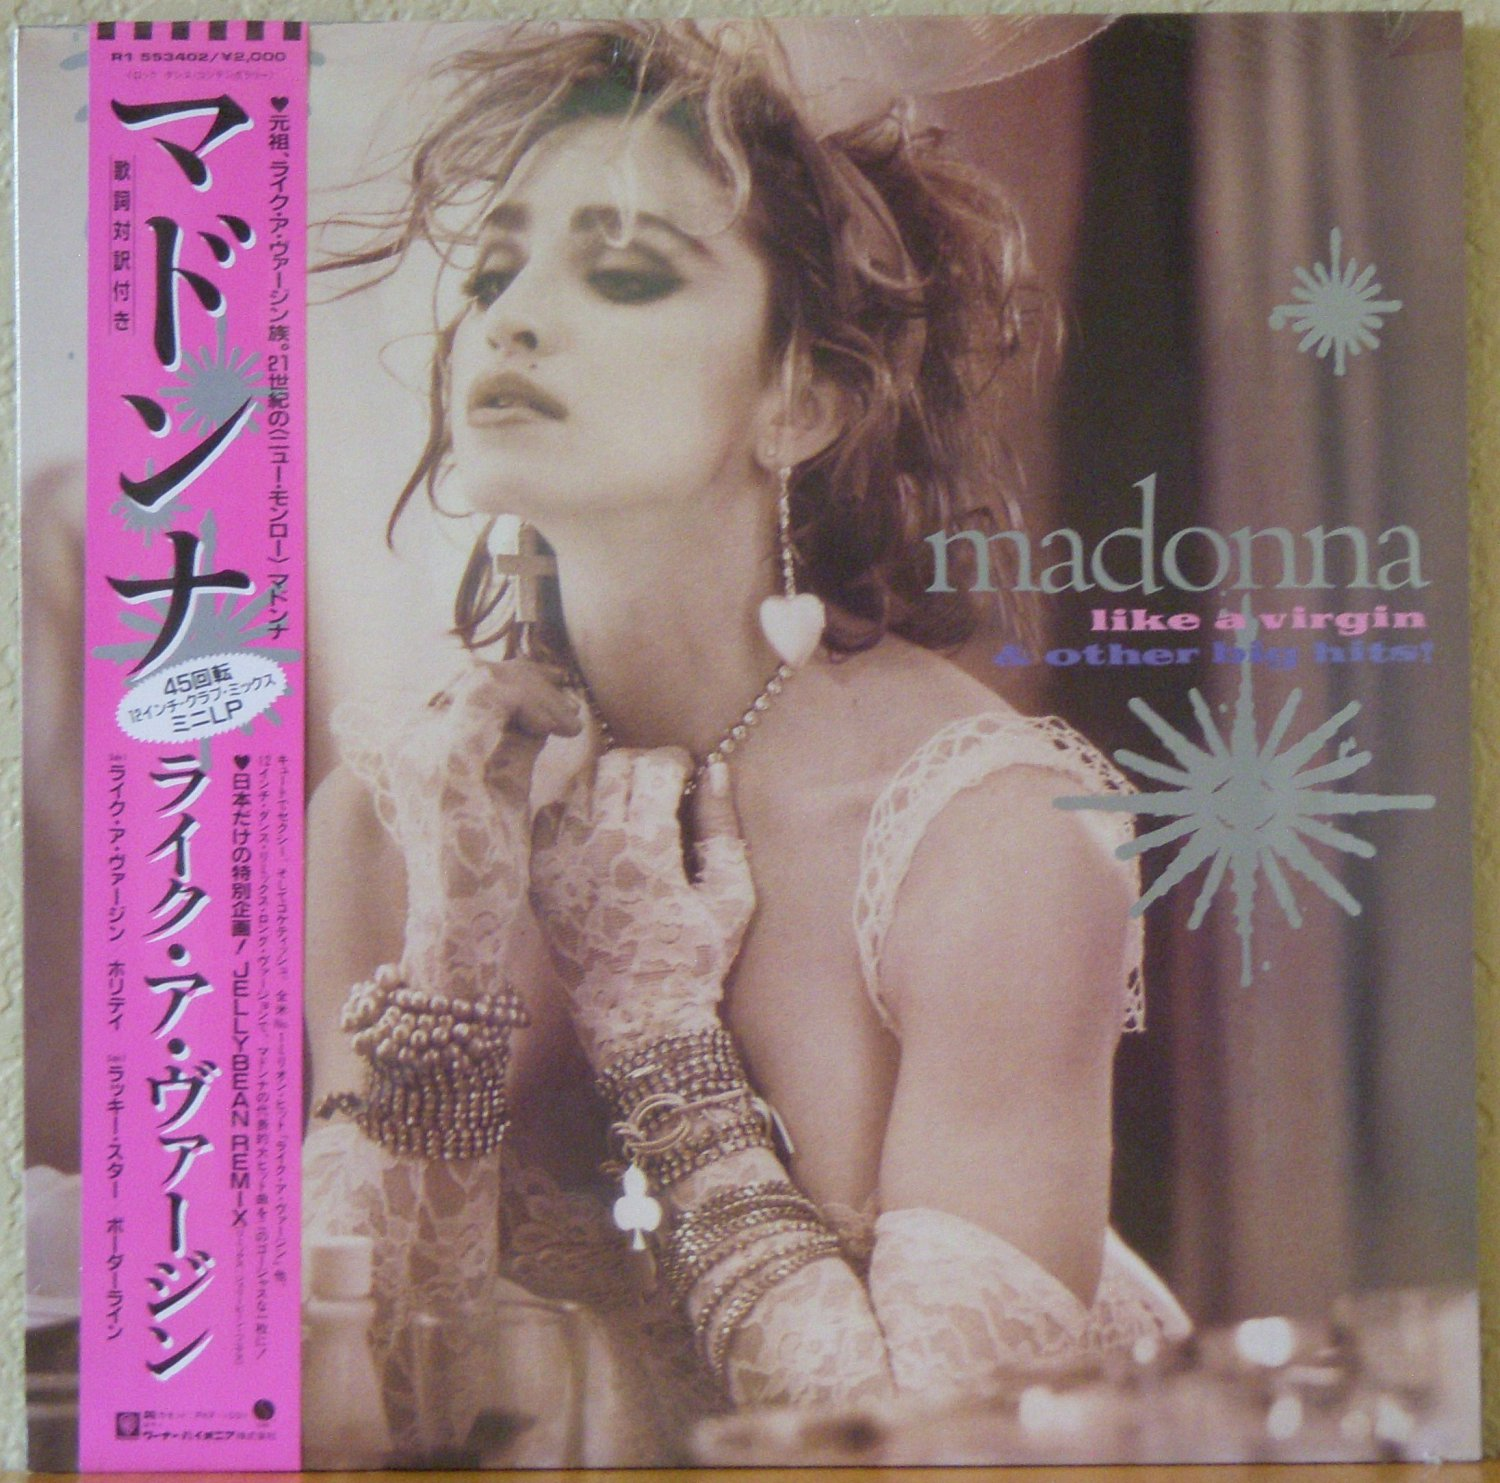 "MADONNA Like A Virgin & Other Big Hits 2016 US 4 Track RECORD STORE DAY 12"" Vinyl Single"